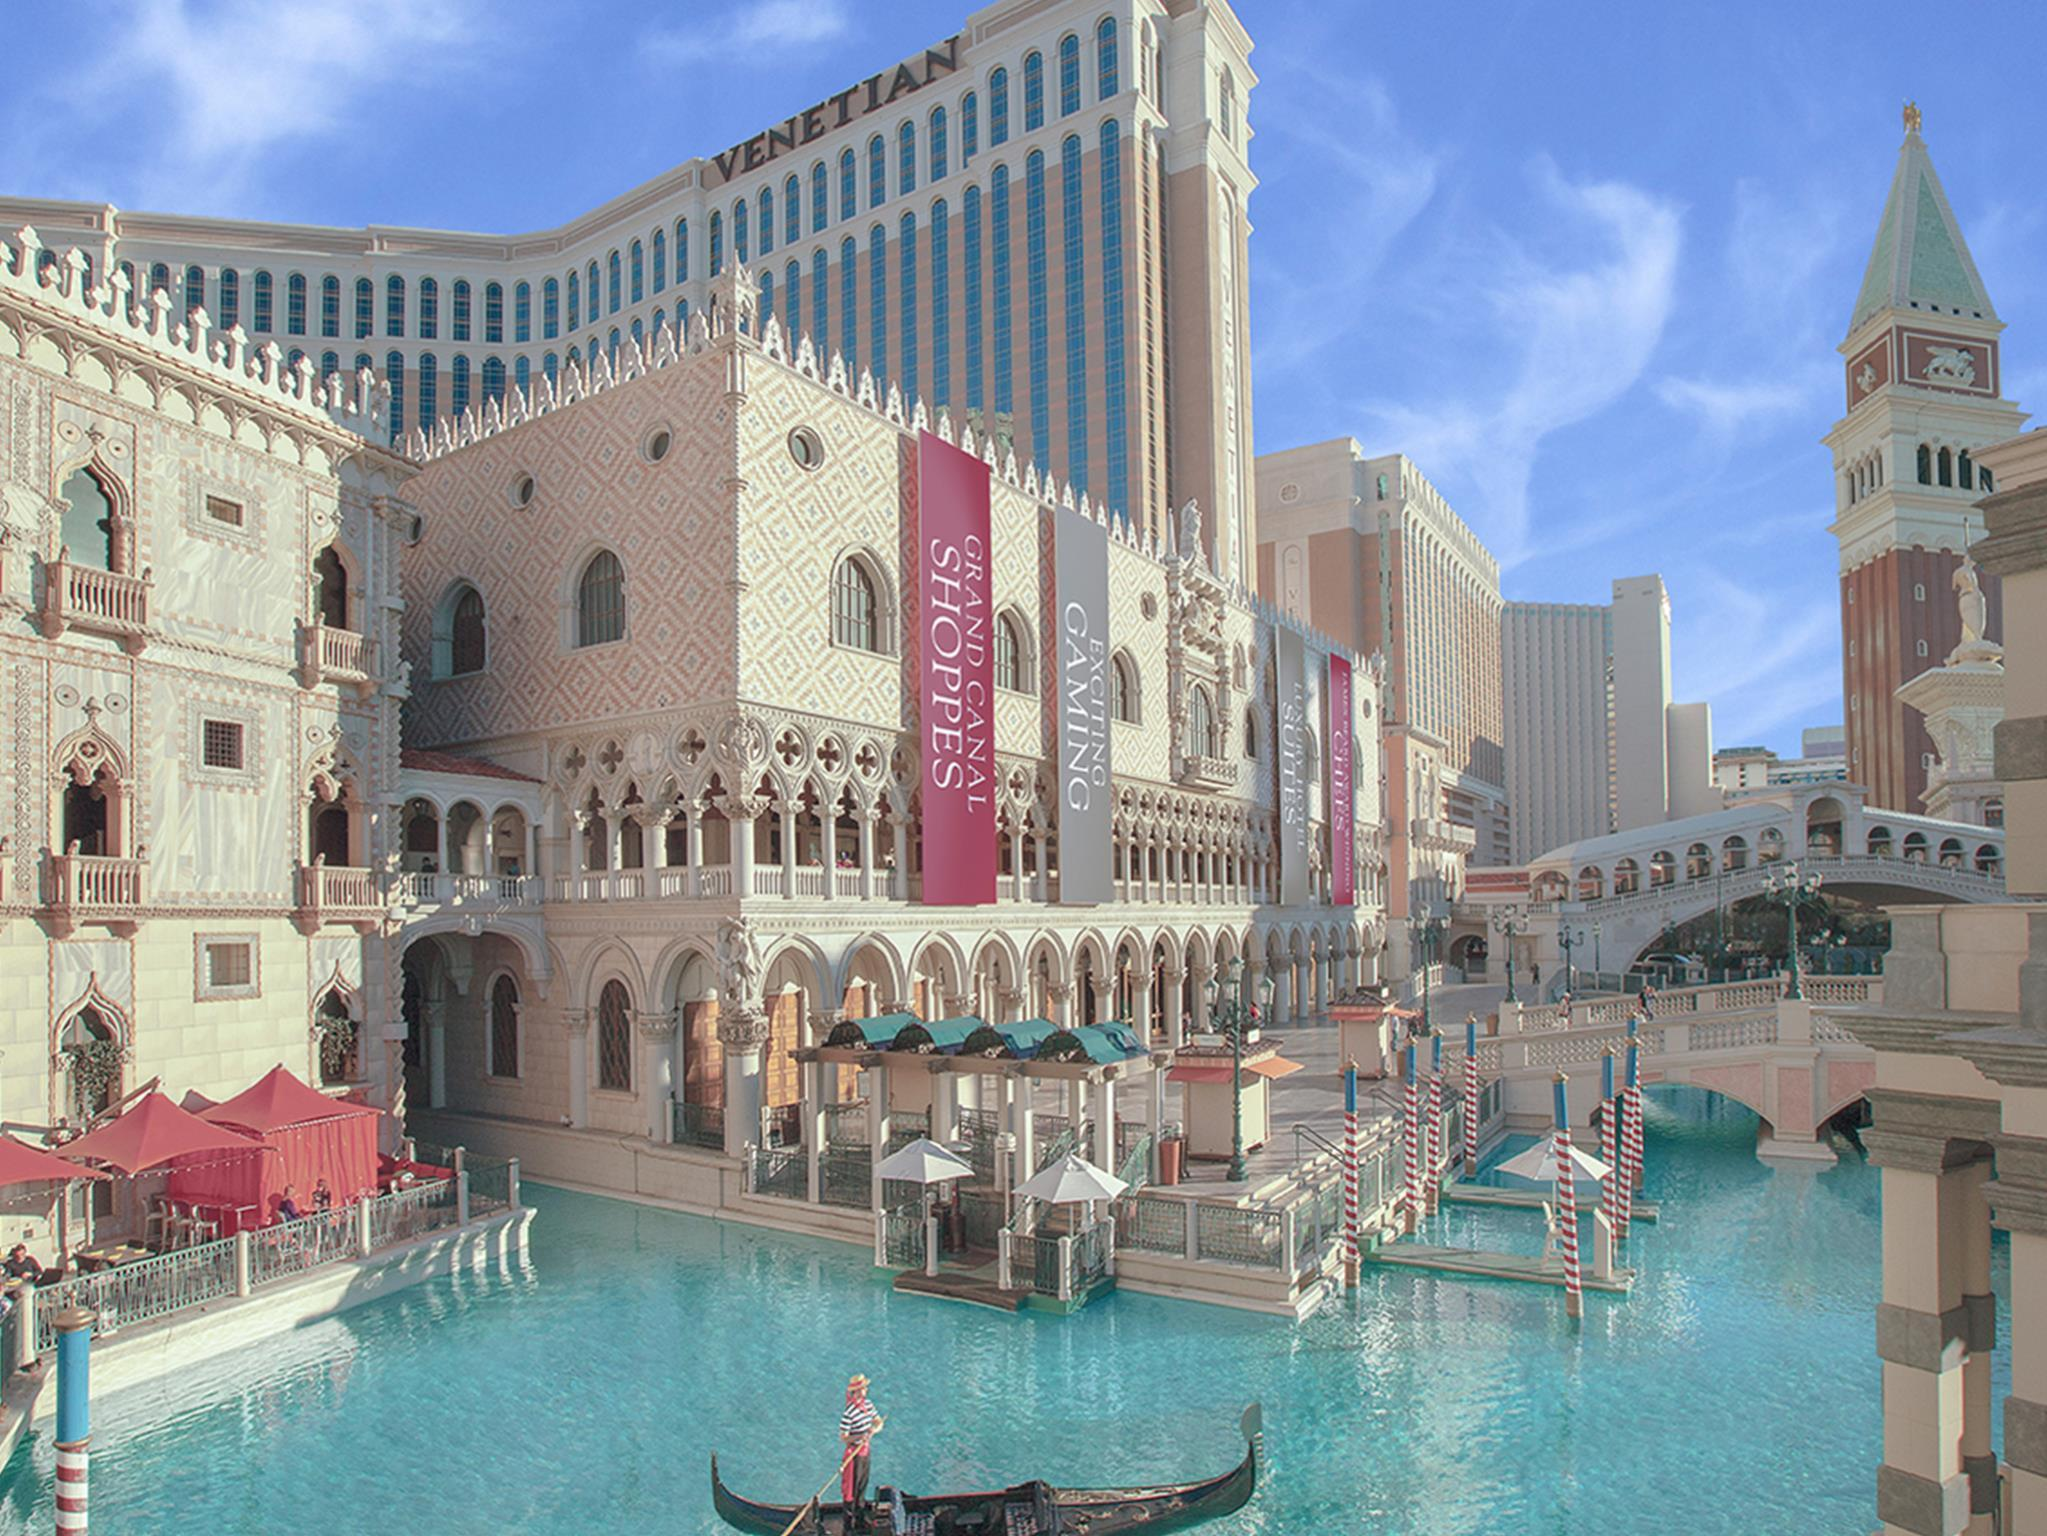 Las vegas venetian hotel casino minecraft server slots calculator